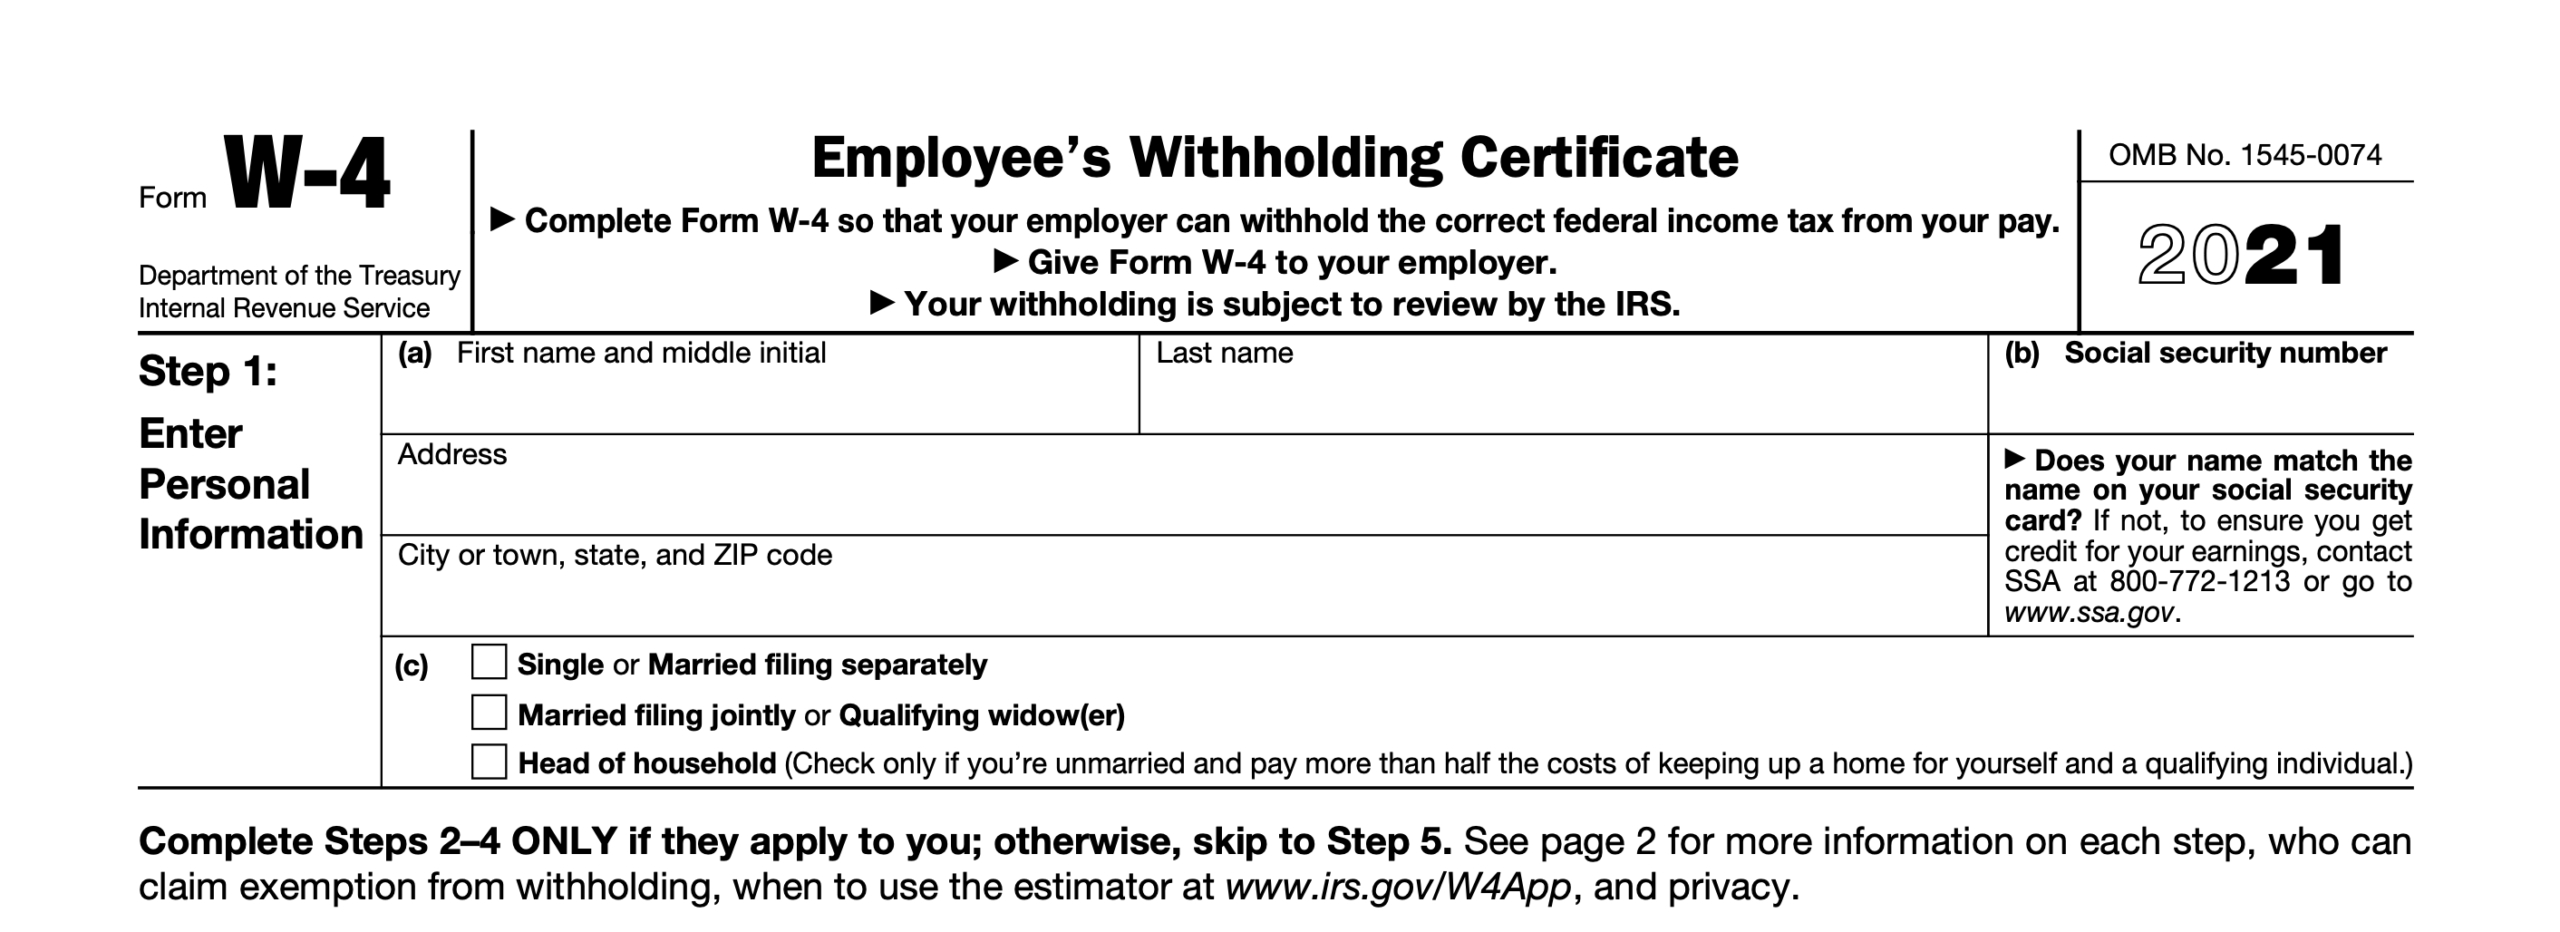 2021 Irs Form W-4: Simple Instructions + Pdf Download for Form W-4 2021